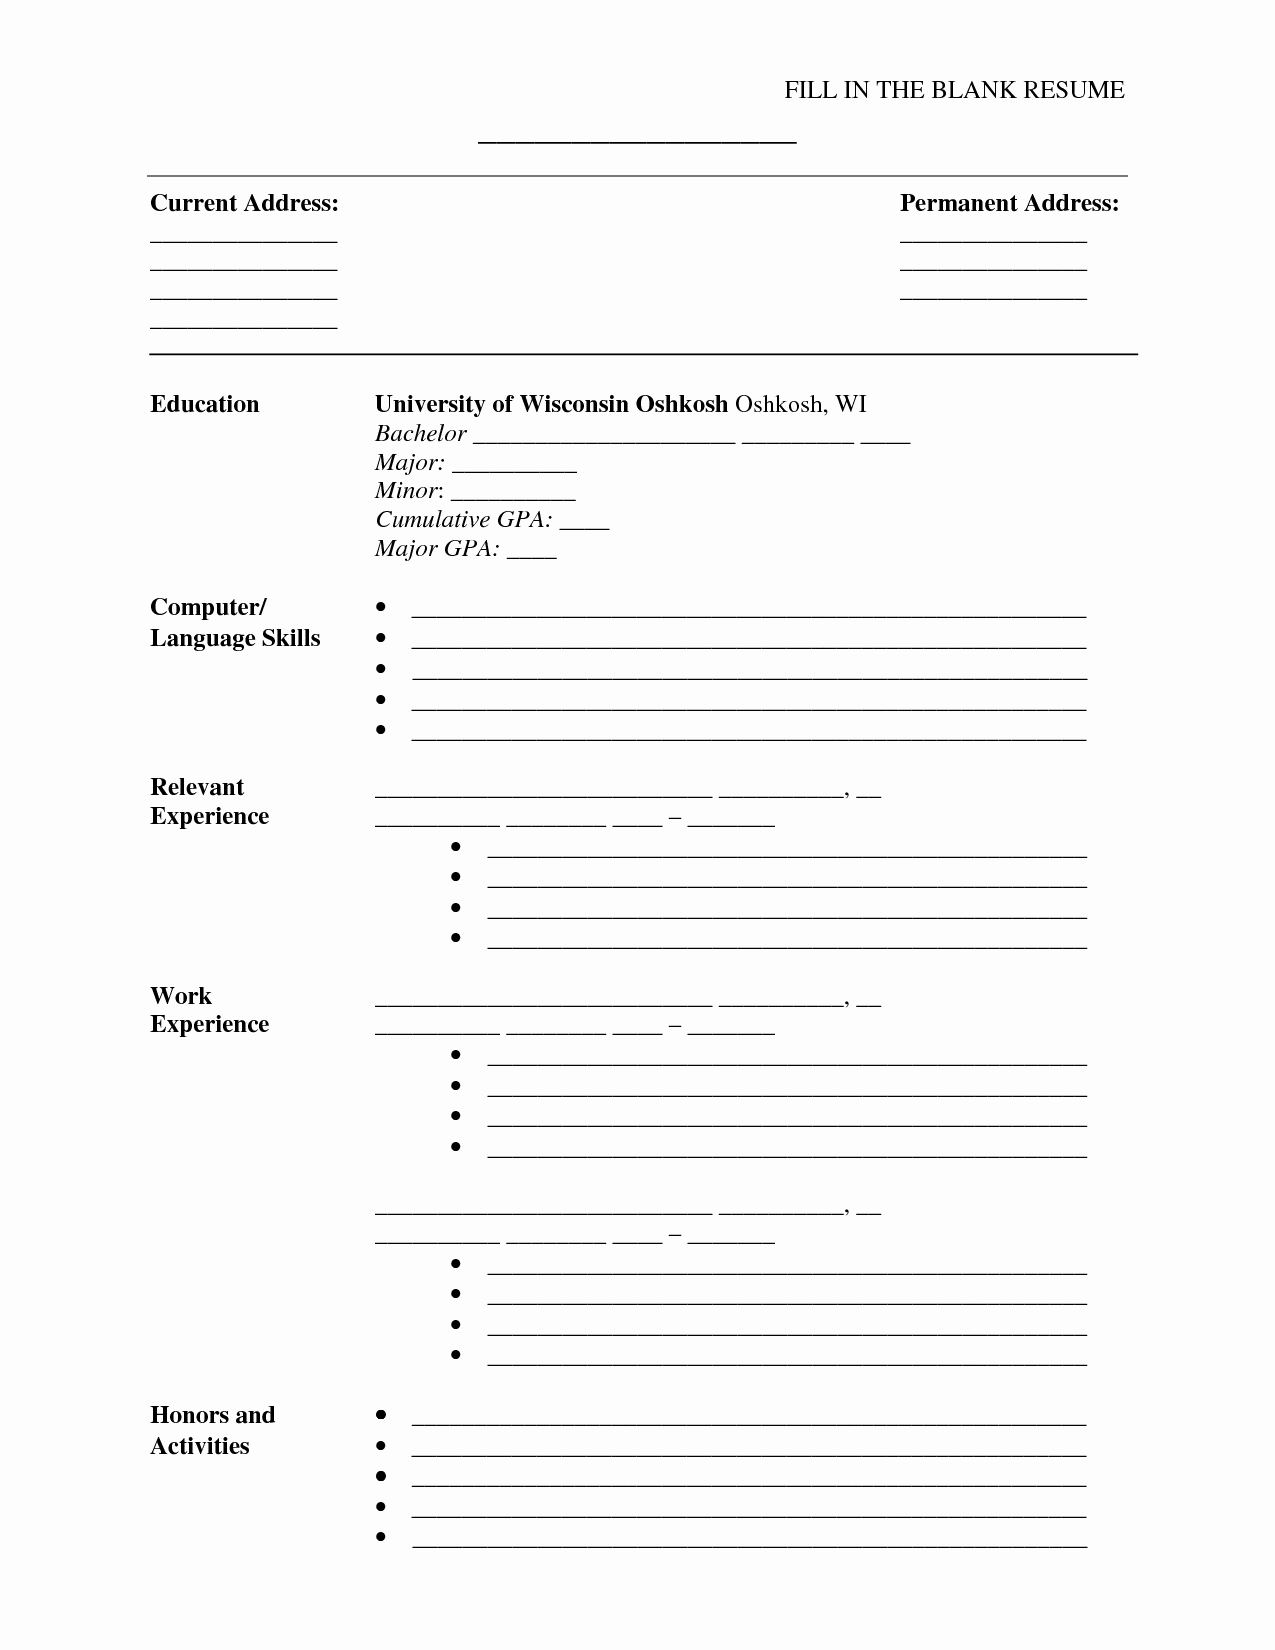 Blank Resume Template Pdf New Fill In the Blank Resume Pdf Umecareer